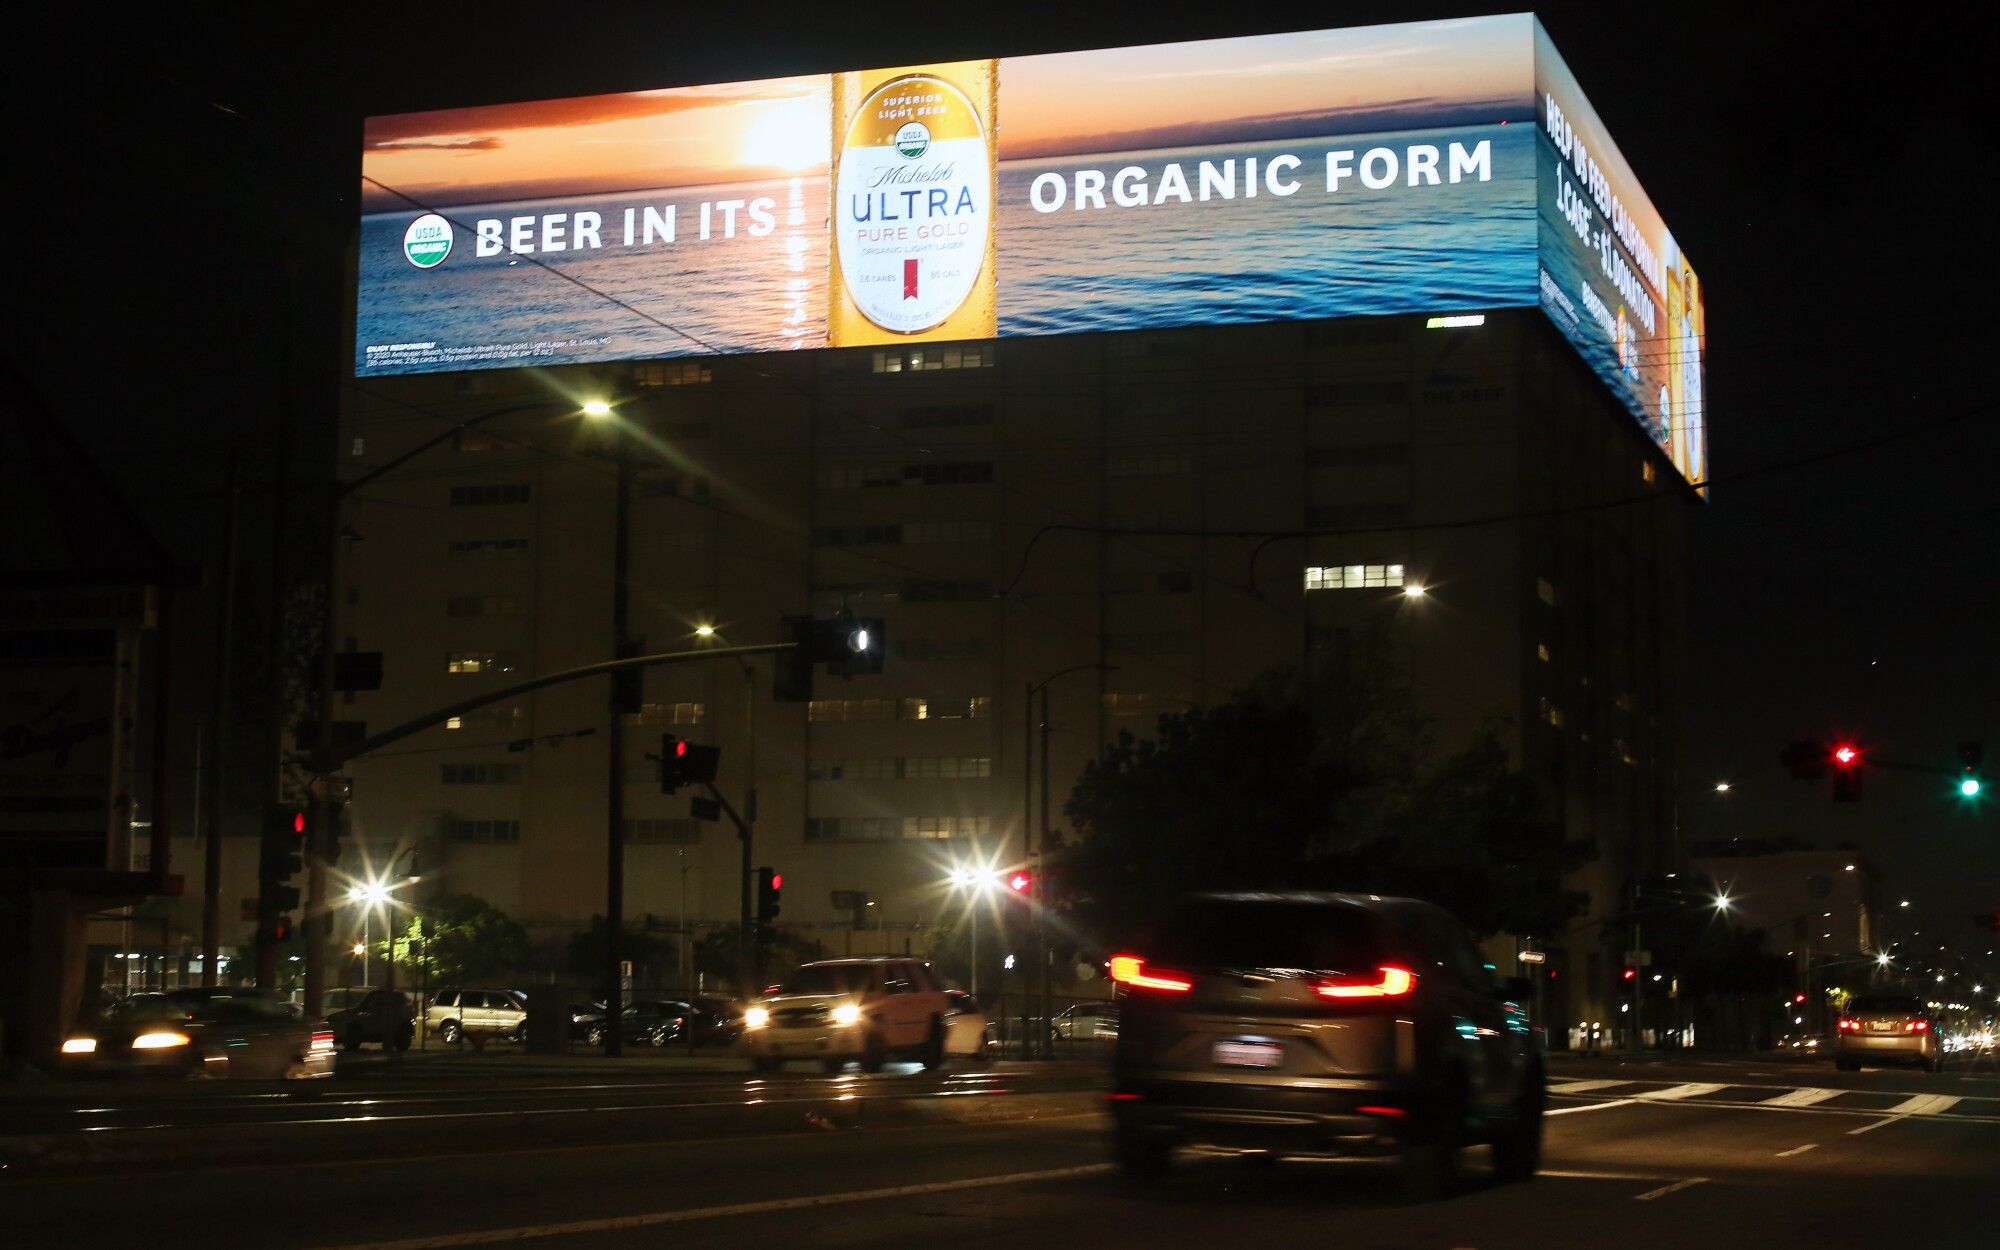 Cars on a nighttime city street pass below brightly lighted electronic billboards advertising beer